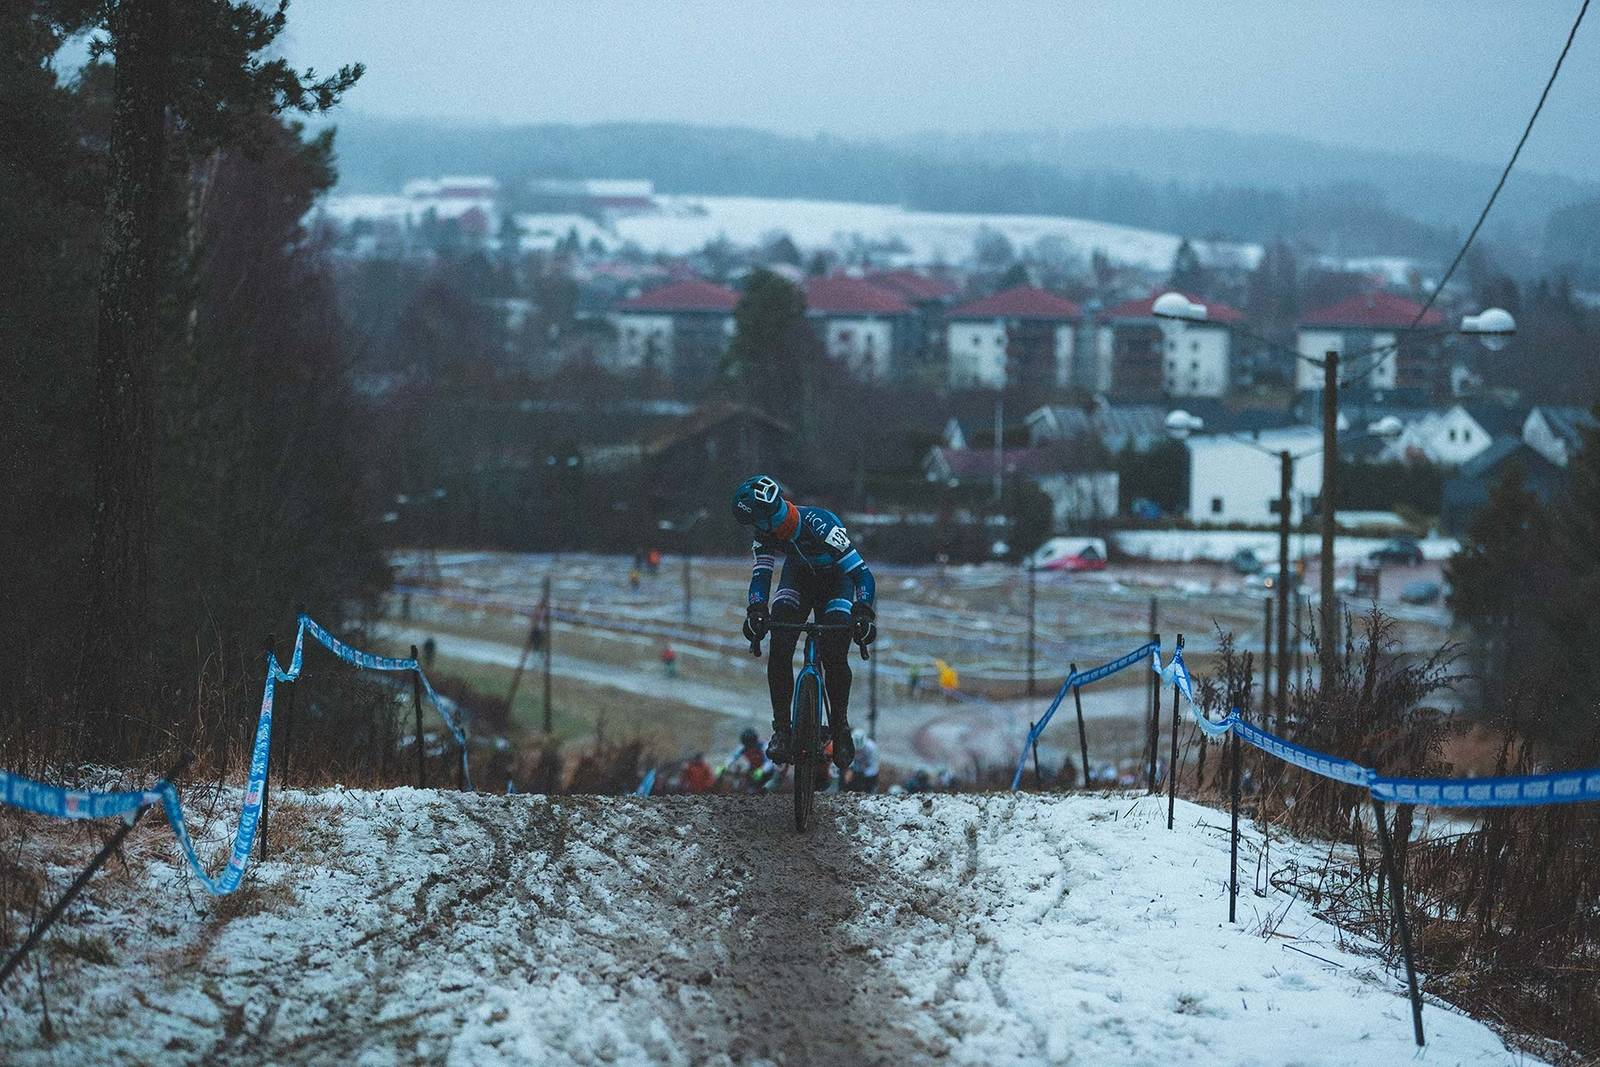 NM cyclocross herrer cx menn Spikkestad